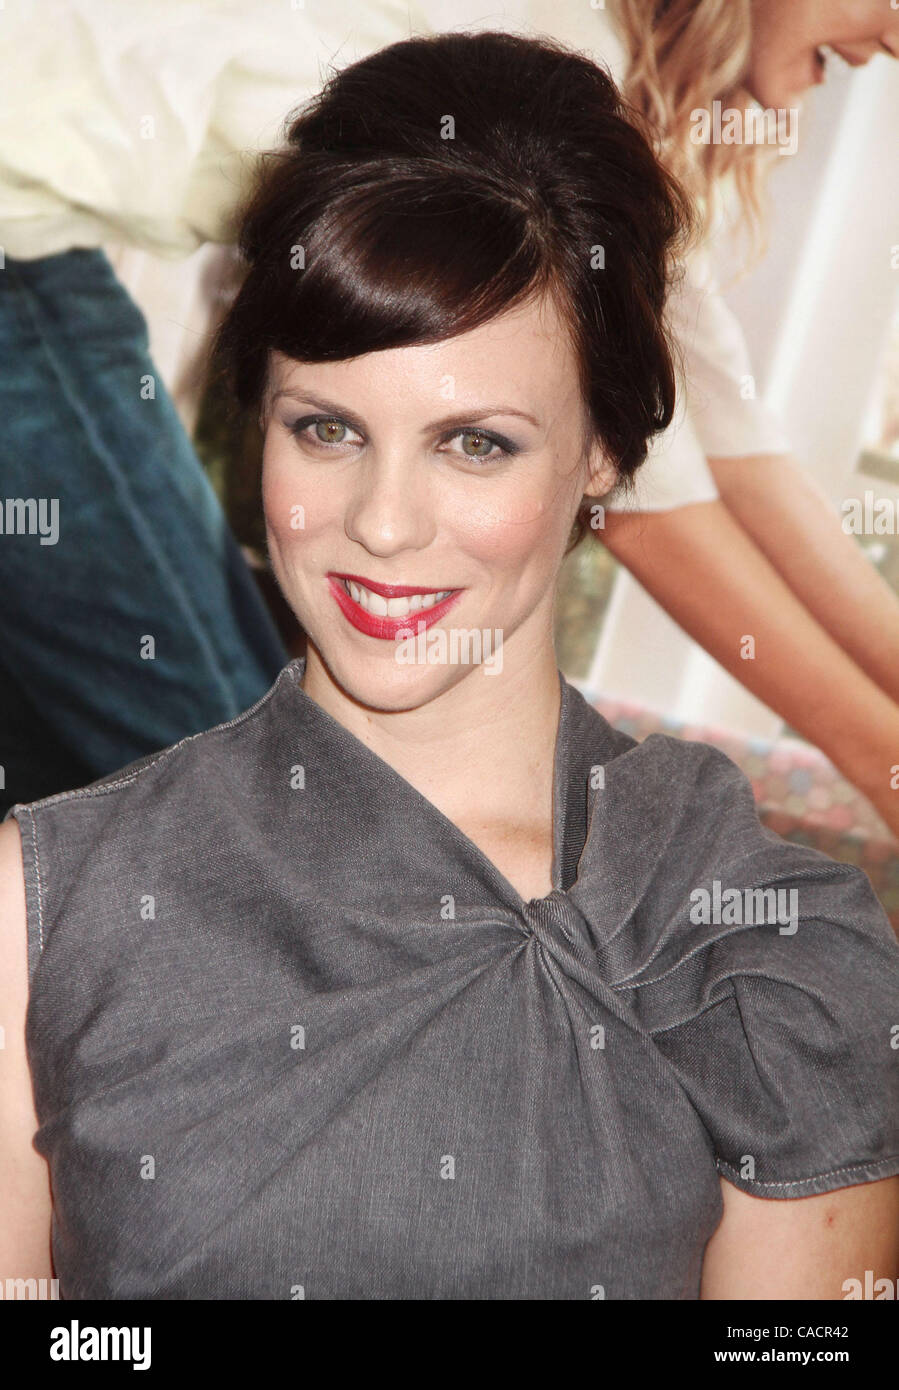 Sept 30 2010 New York New York U S Actress Sarah Burns Stock Photo Alamy